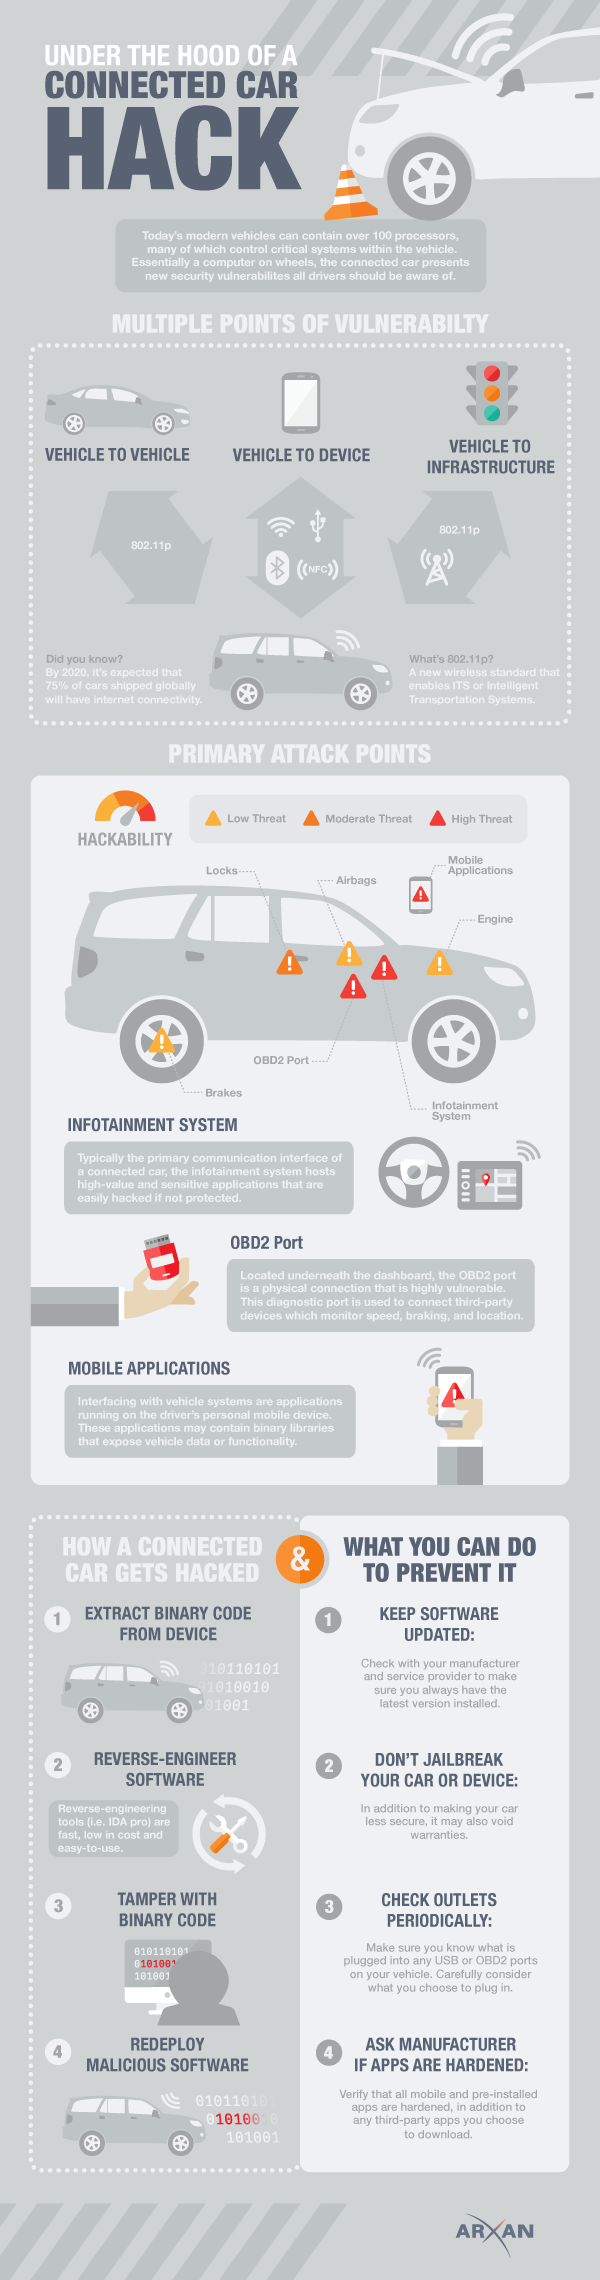 Arxan Technologies infographic on protecting an auto from hackers.